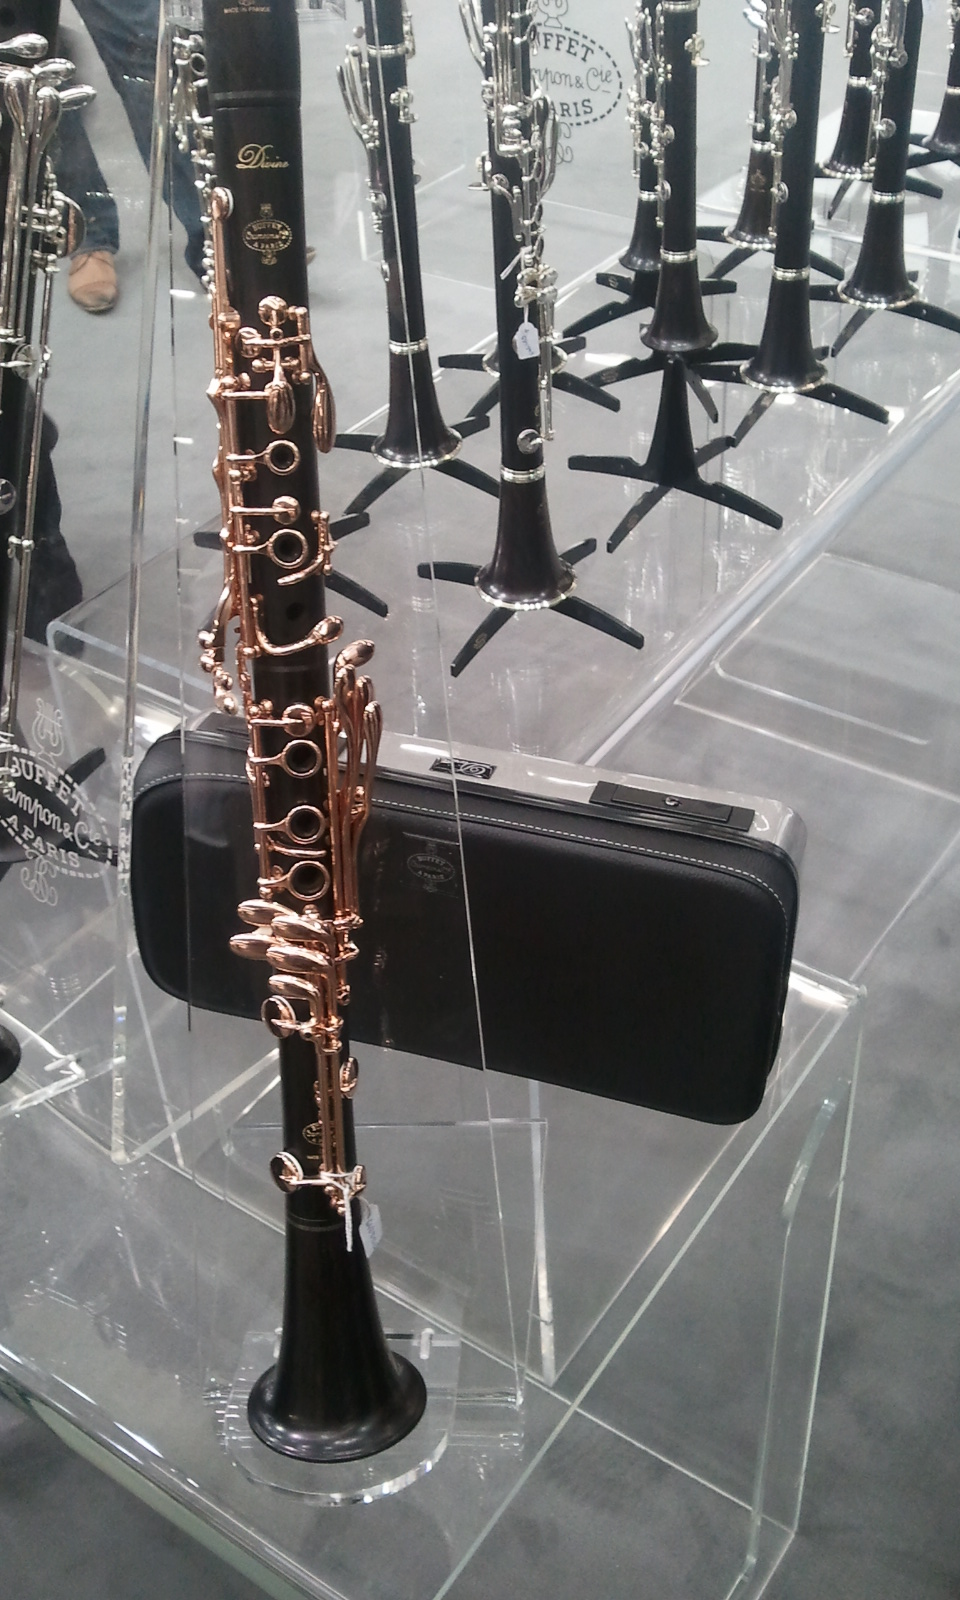 Astonishing Presentacion Oficial Nuevo Clarinete Buffet Divine Musicasa Home Interior And Landscaping Eliaenasavecom